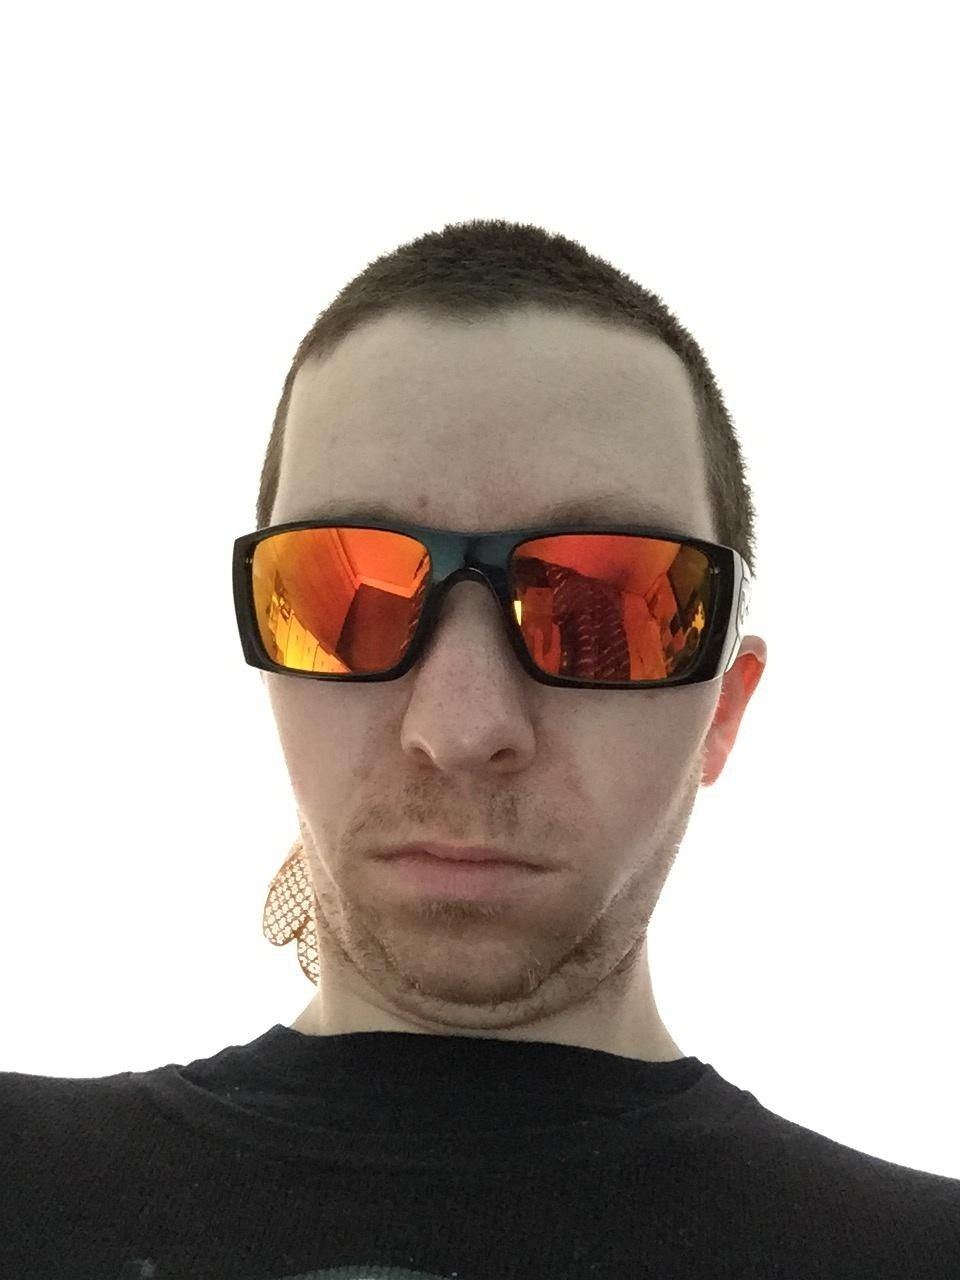 Best suited Oakleys for me - hNeezSf.jpg